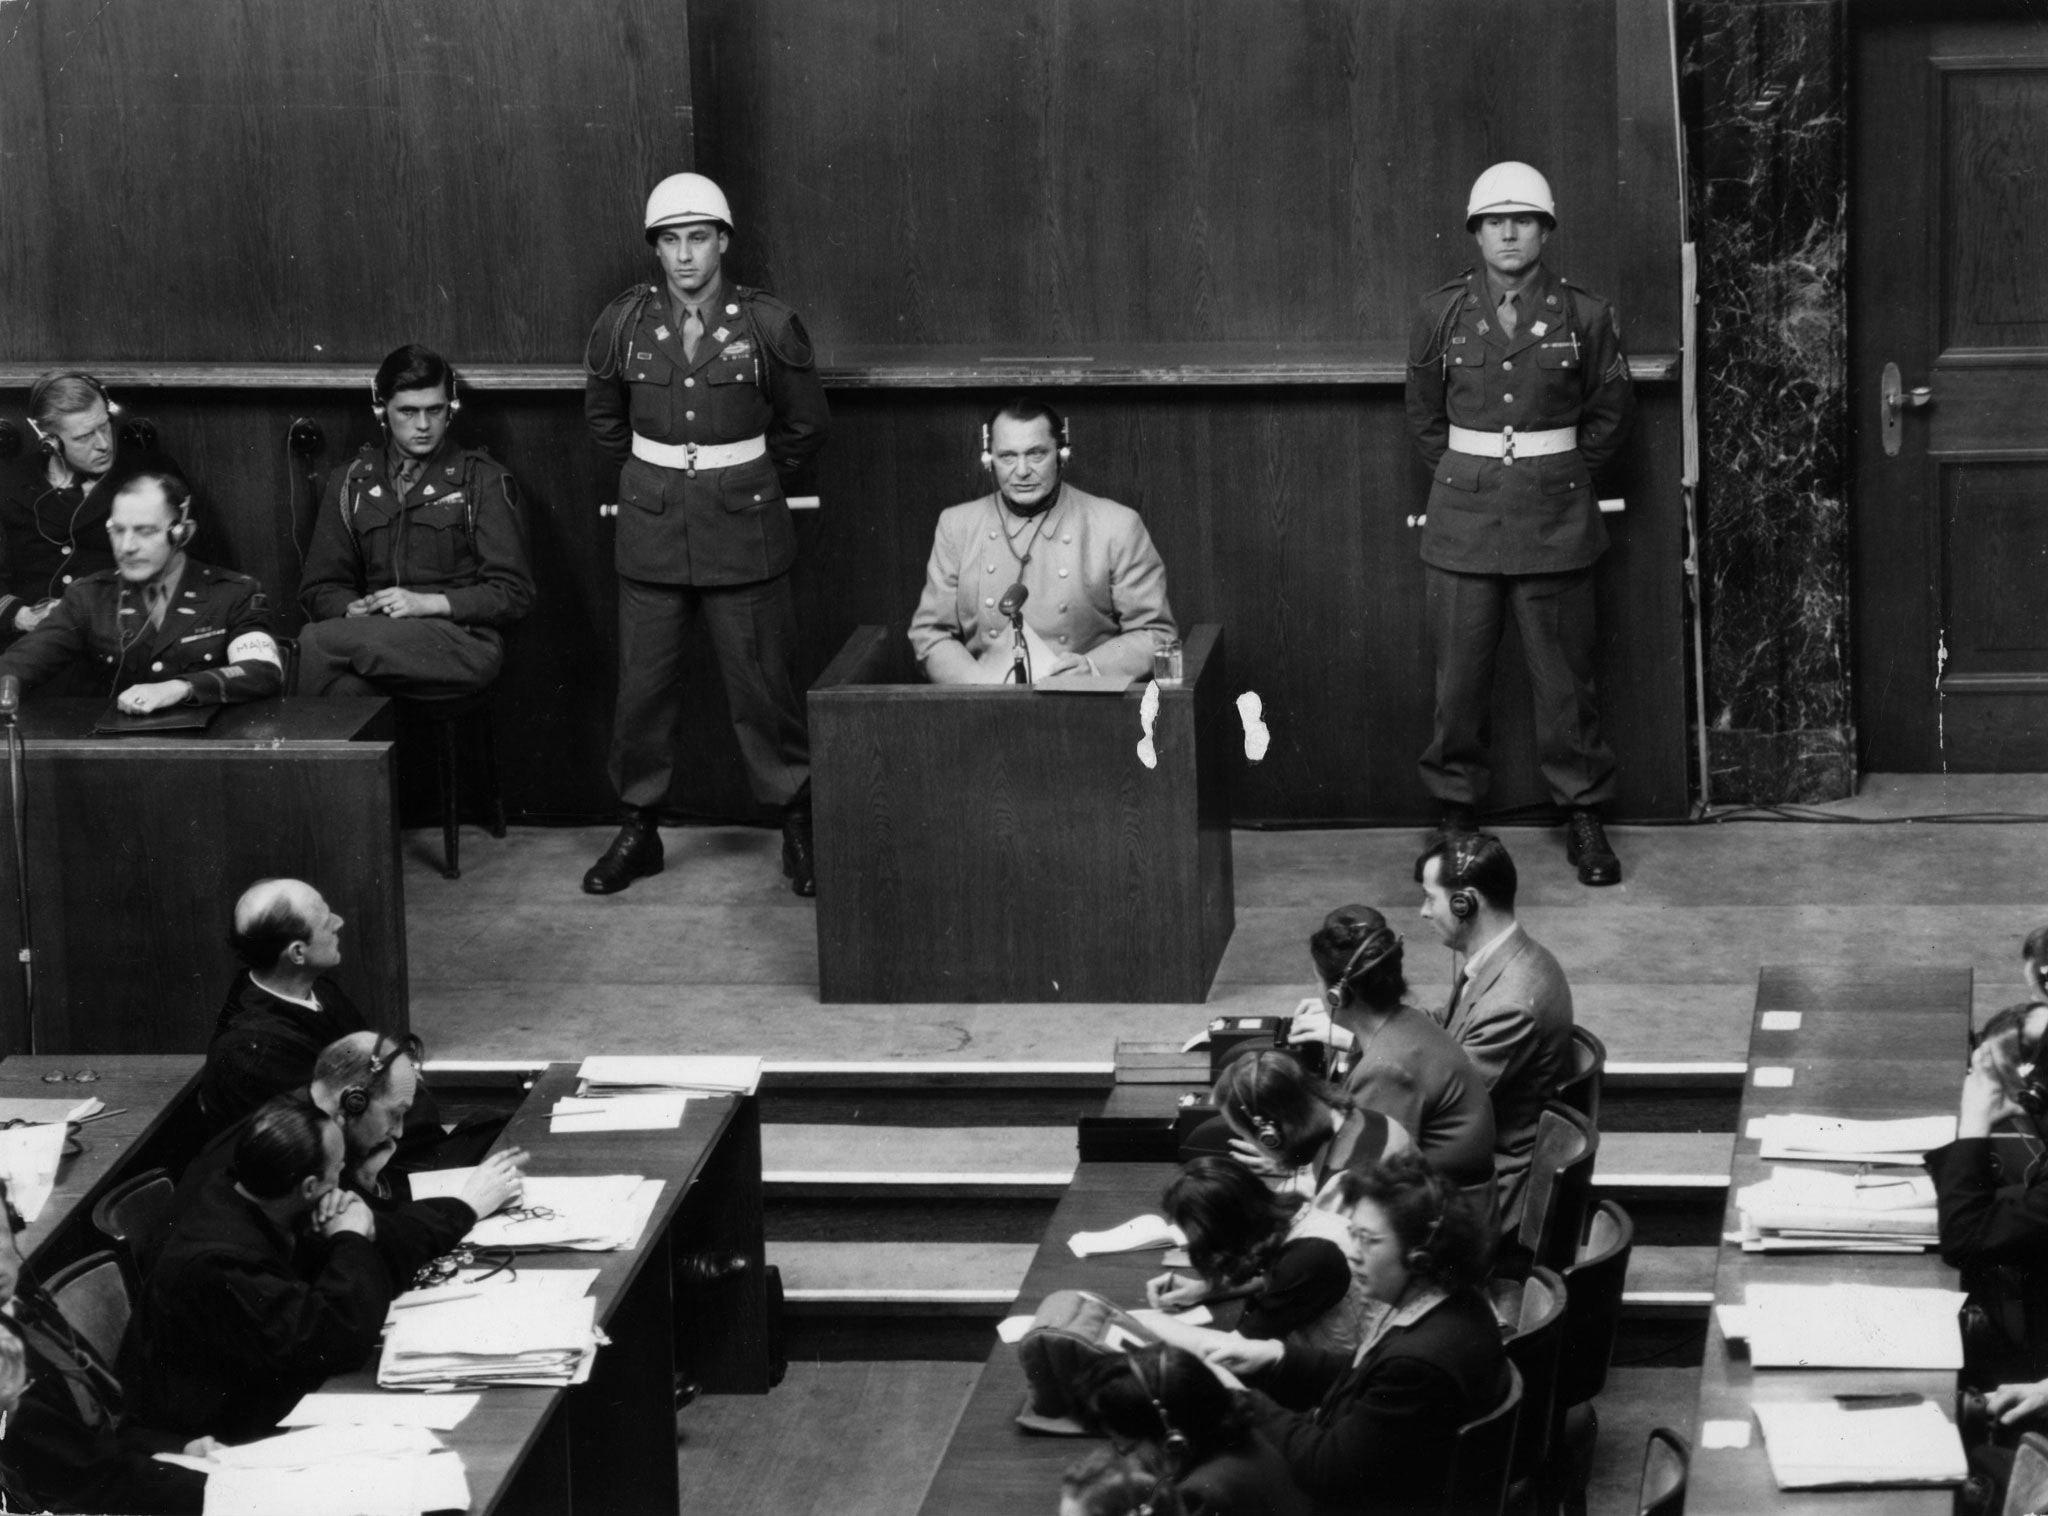 a personal perspective on the pros and cons of putting nazi generals on trials for war crimes